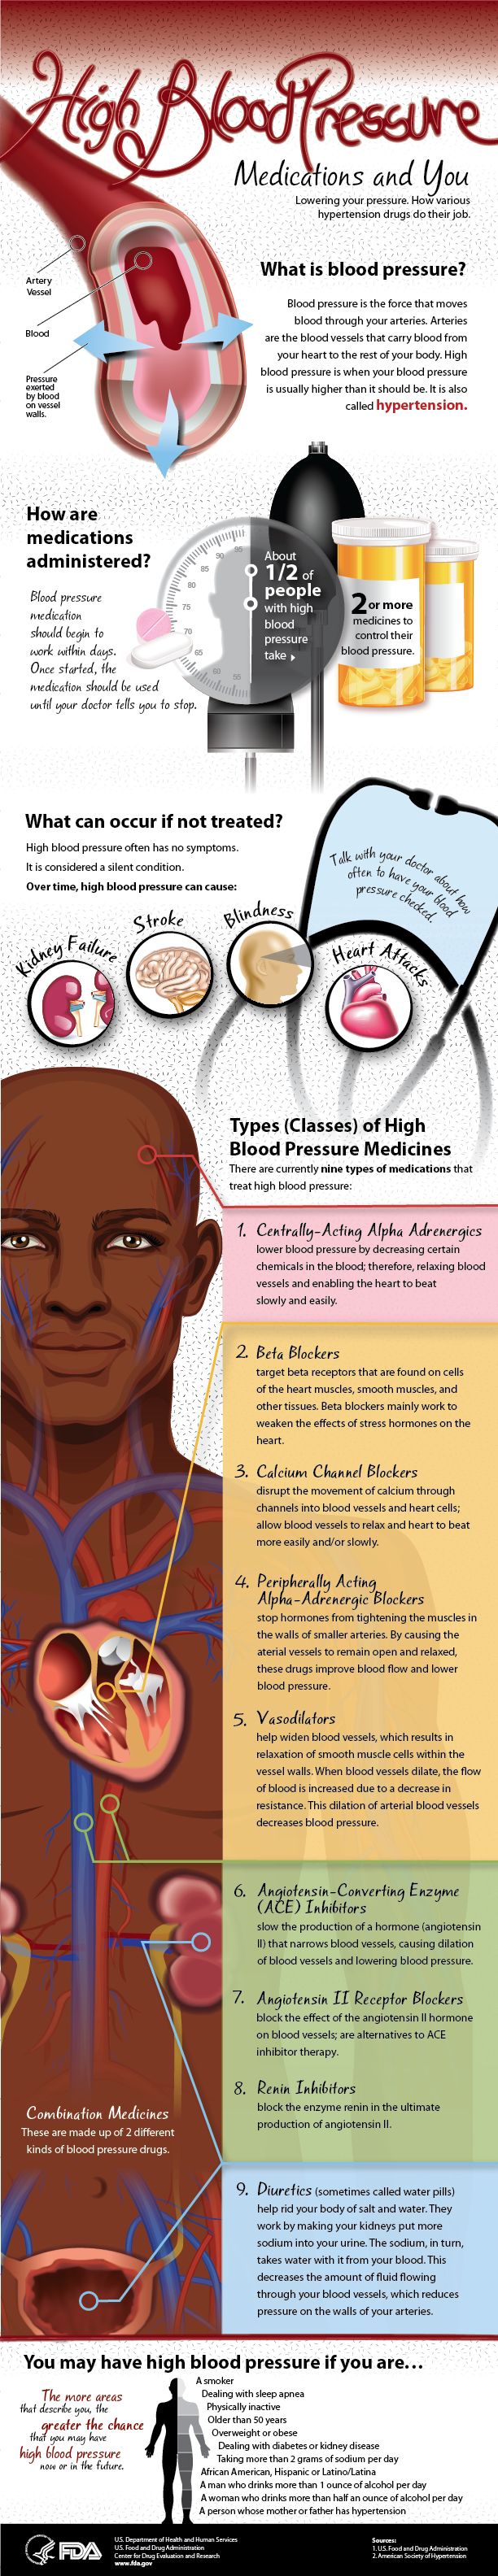 Types of Blood Pressure Medications